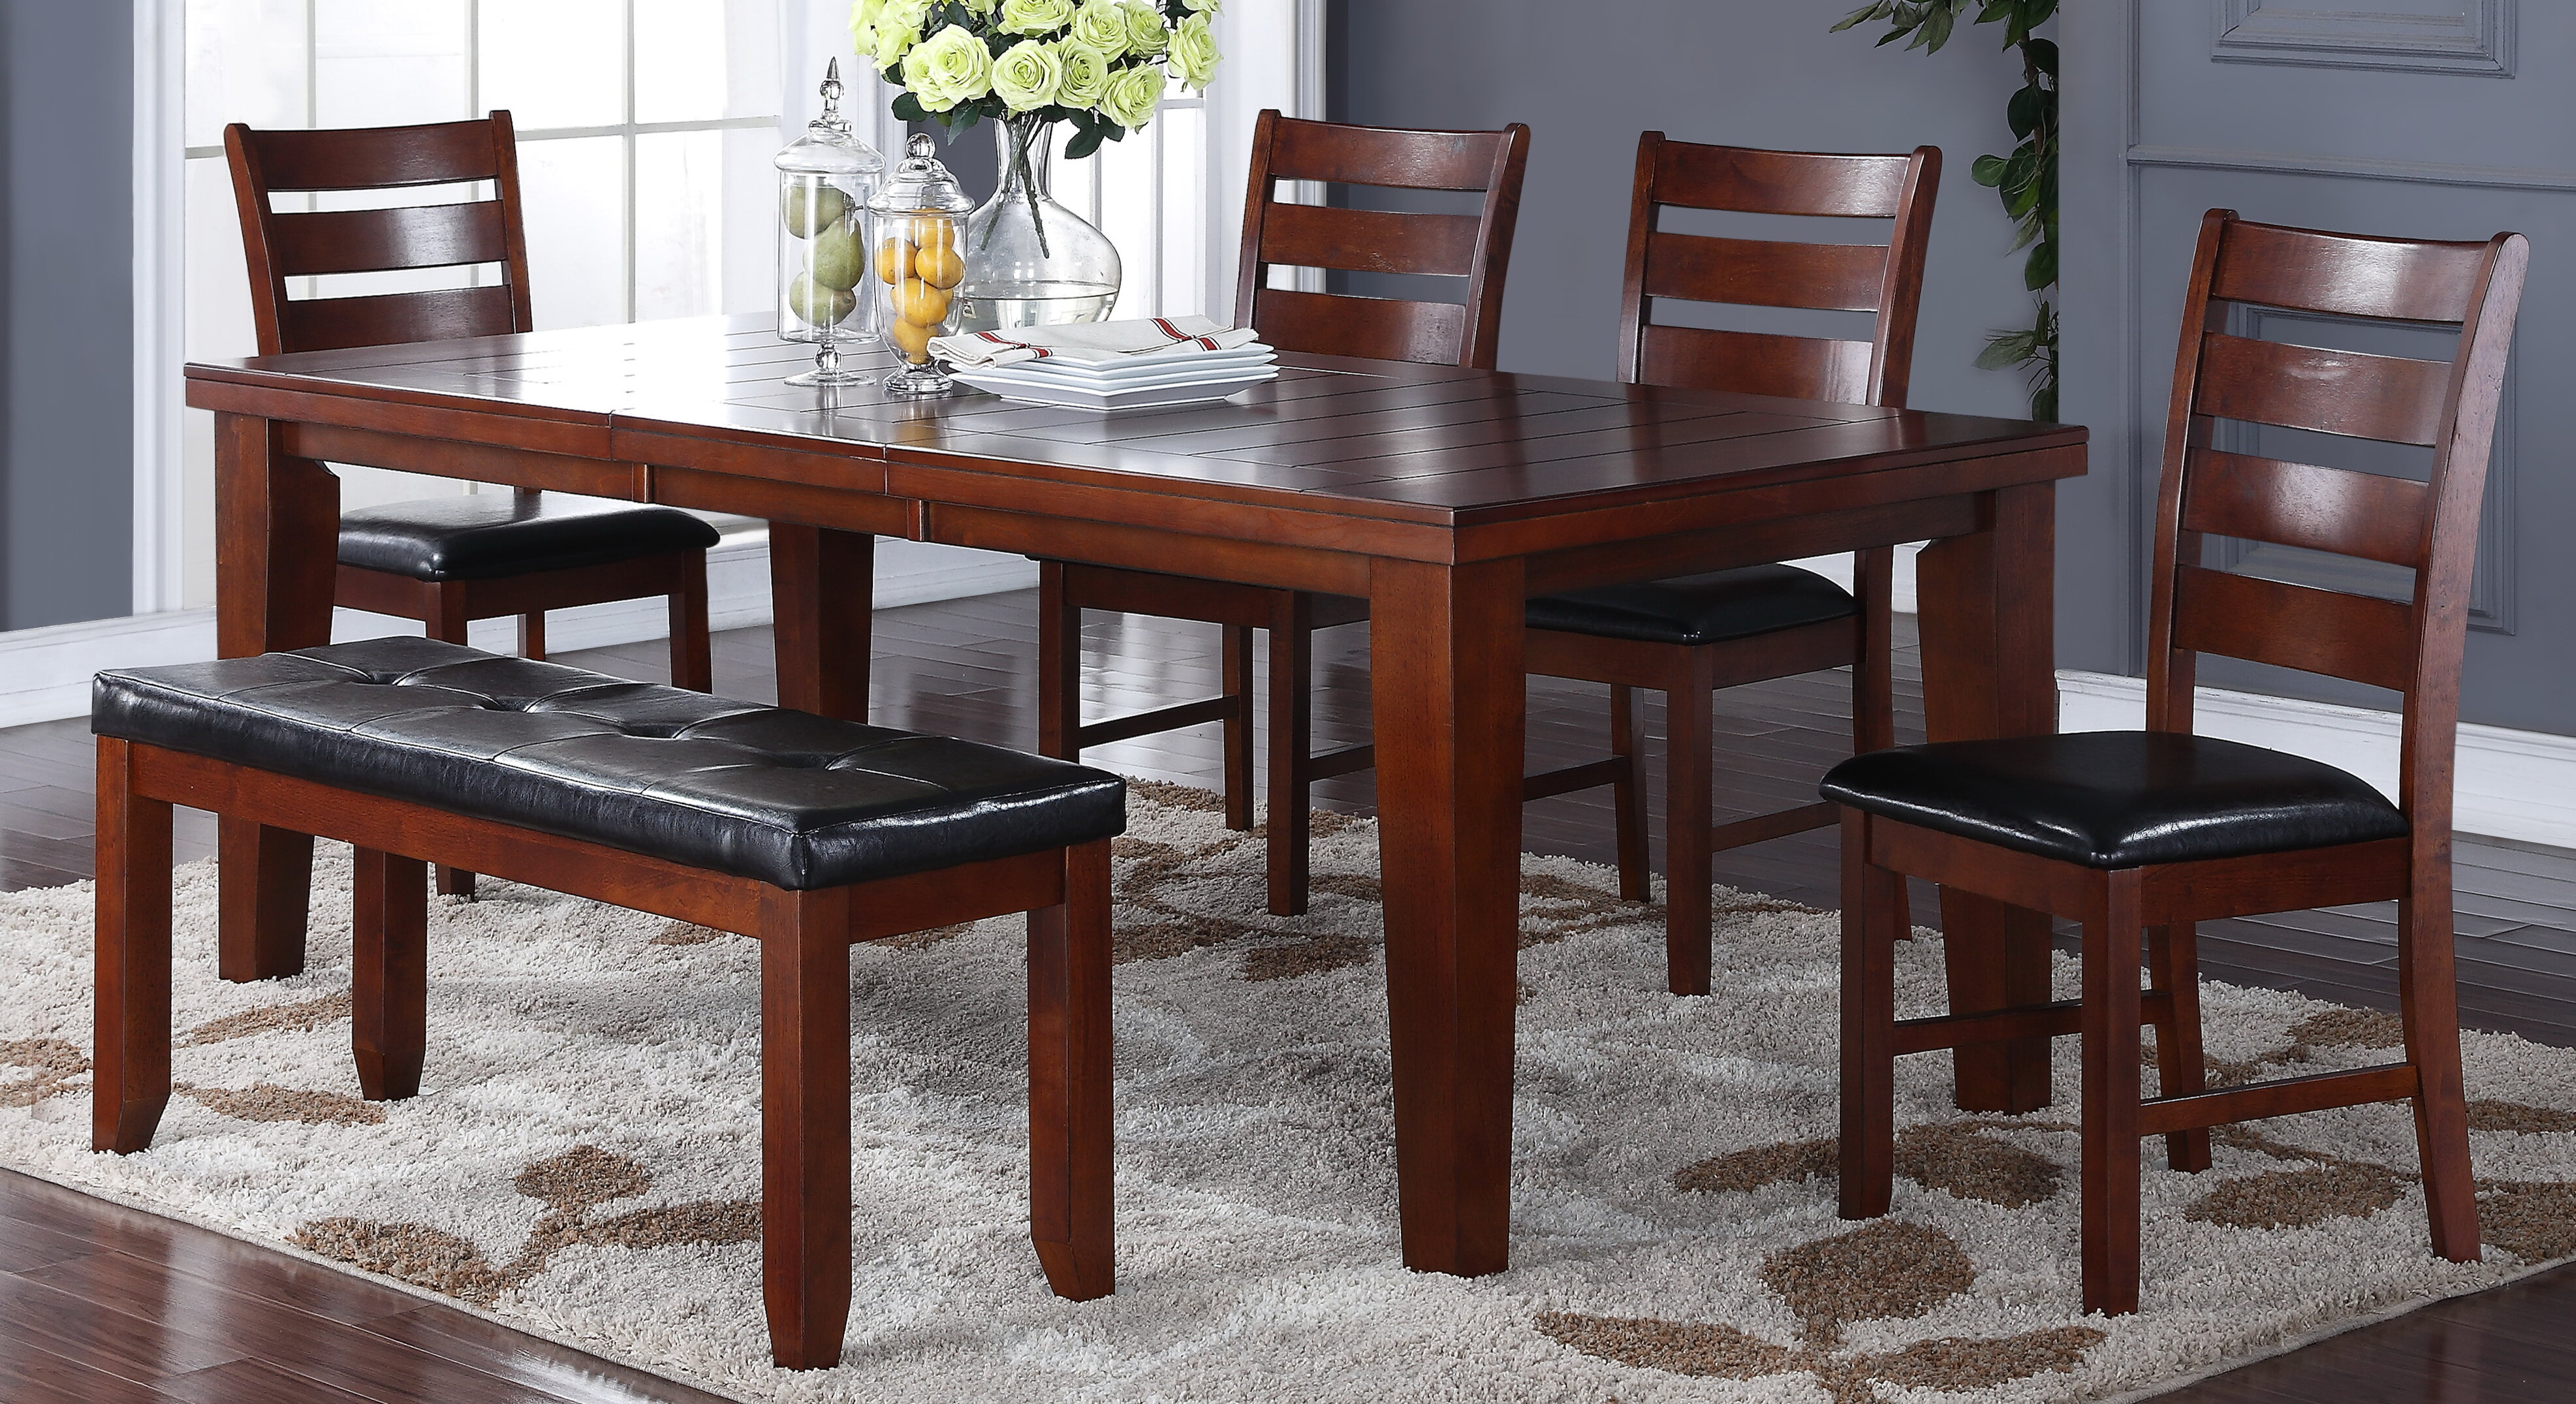 Red Barrel Studio Chaffin 6 Piece Dining Set Reviews Wayfair